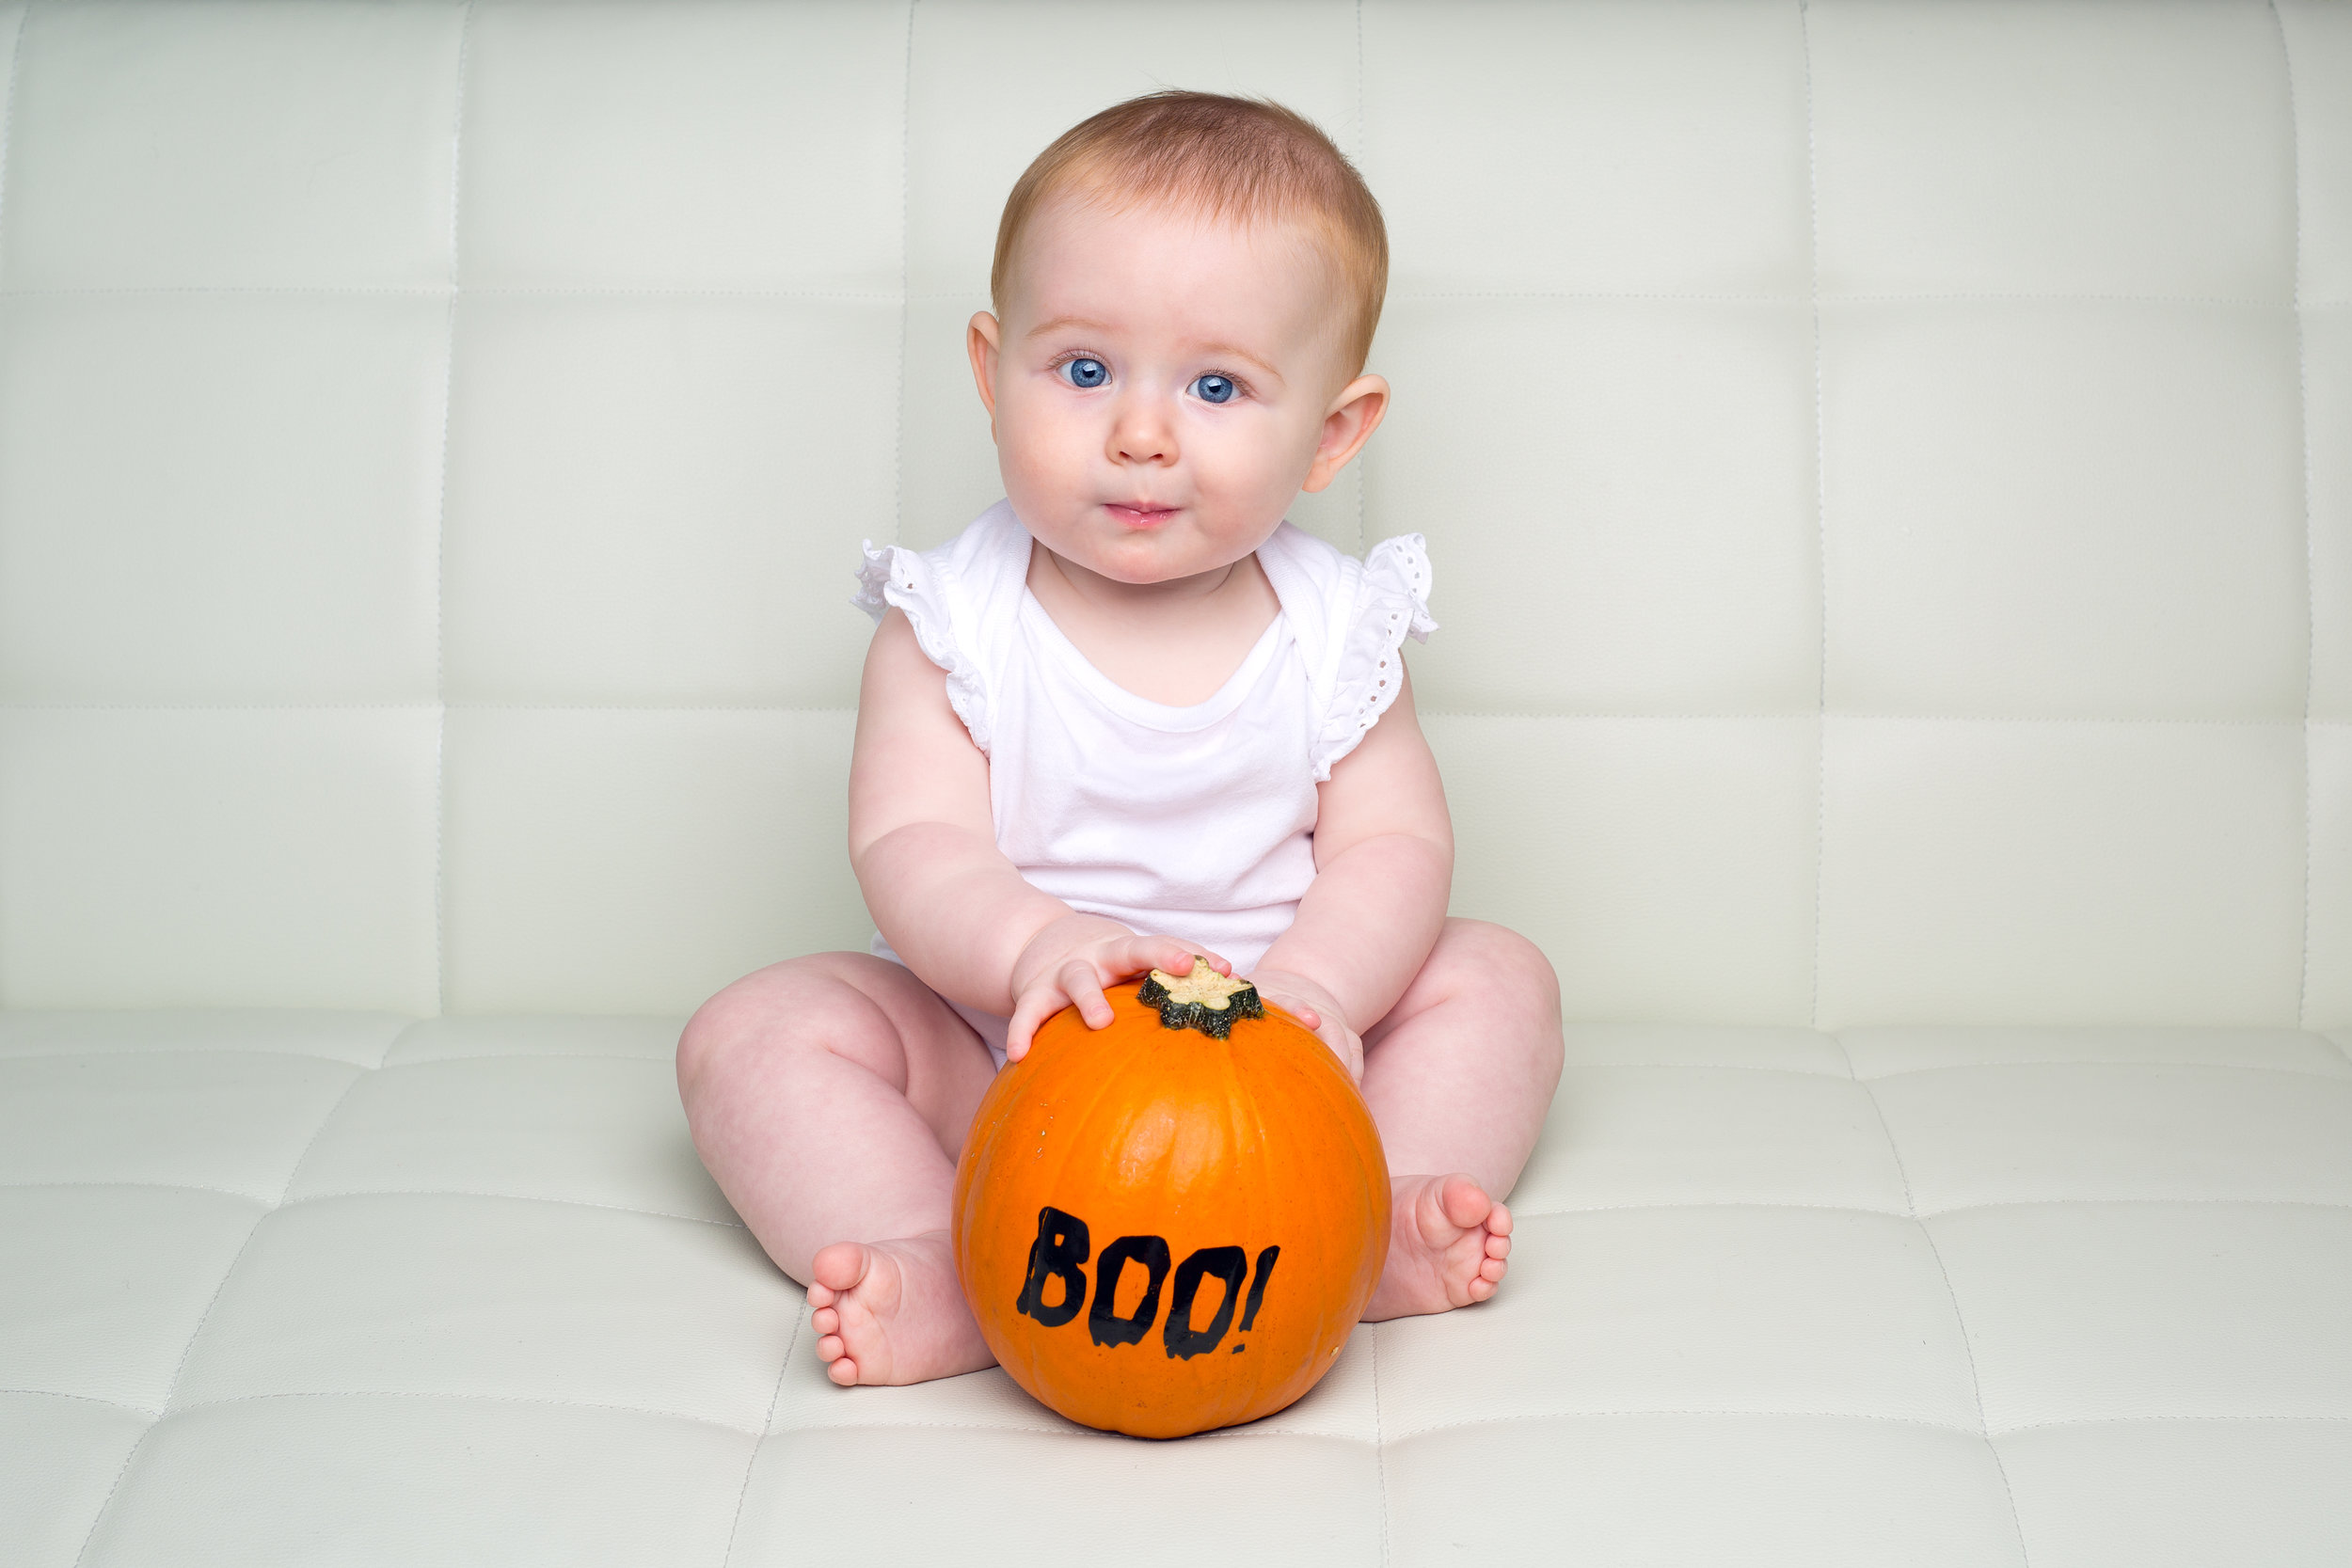 TRICK-OR-TREAT - Come by Smallish on Halloween from 4:00-7:00pm and enjoy fun treats and festive games for kiddos.* Trick-or-Treat* Fun games including a Fishing Booth (fish for your candy and surprises!),Pin the Stem on the Pumpkin, and more!Open to everyone, big and small!